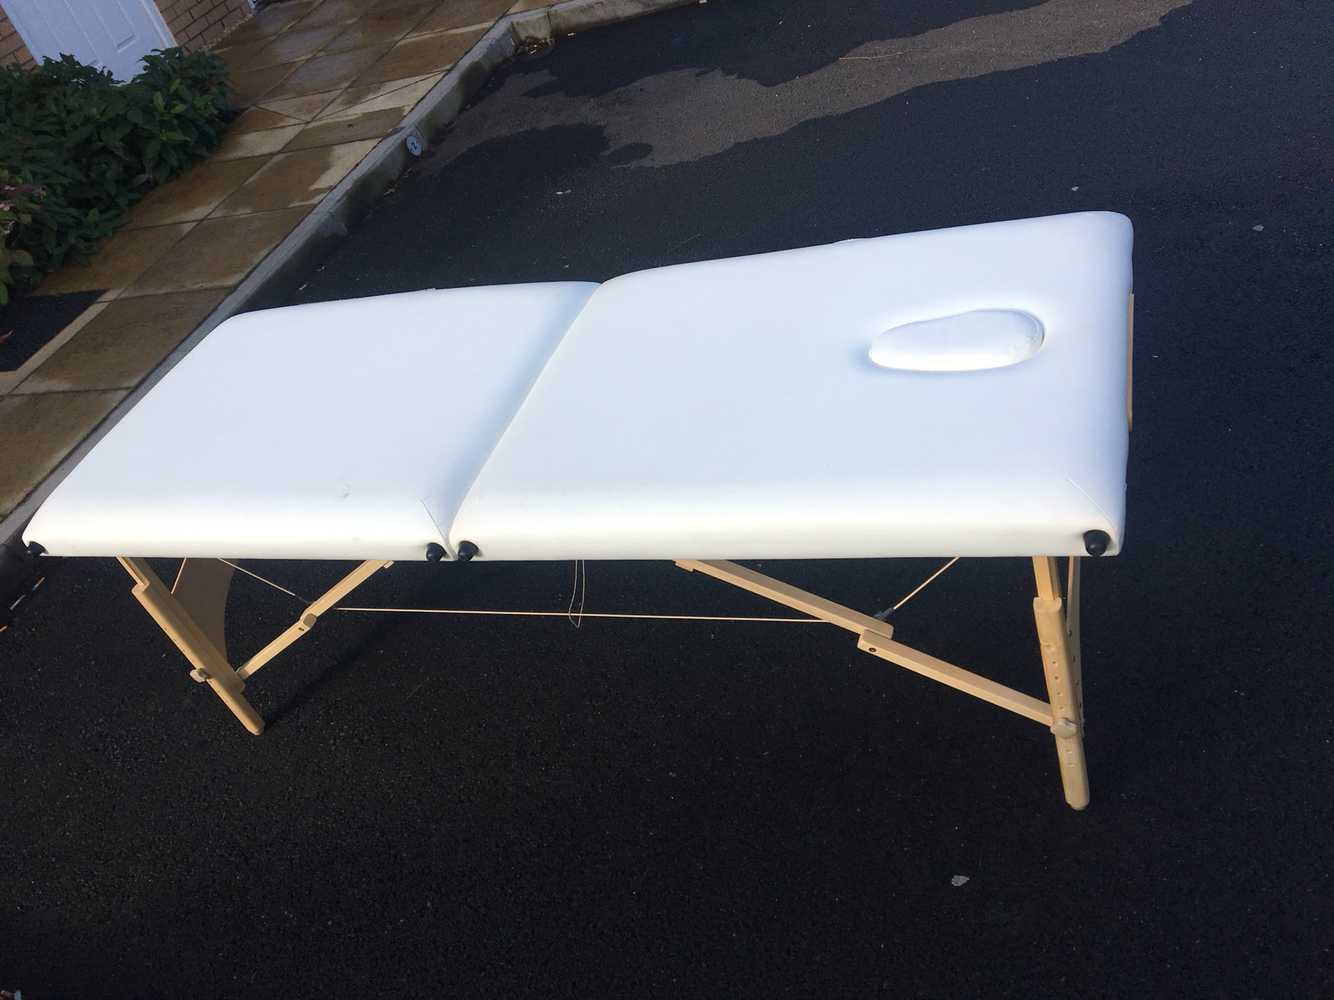 new wave large white leather massage table for sale very sturdy itu0027s in excellent condition as iu0027ve only used it a couple of times is no longer needed - Massage Tables For Sale